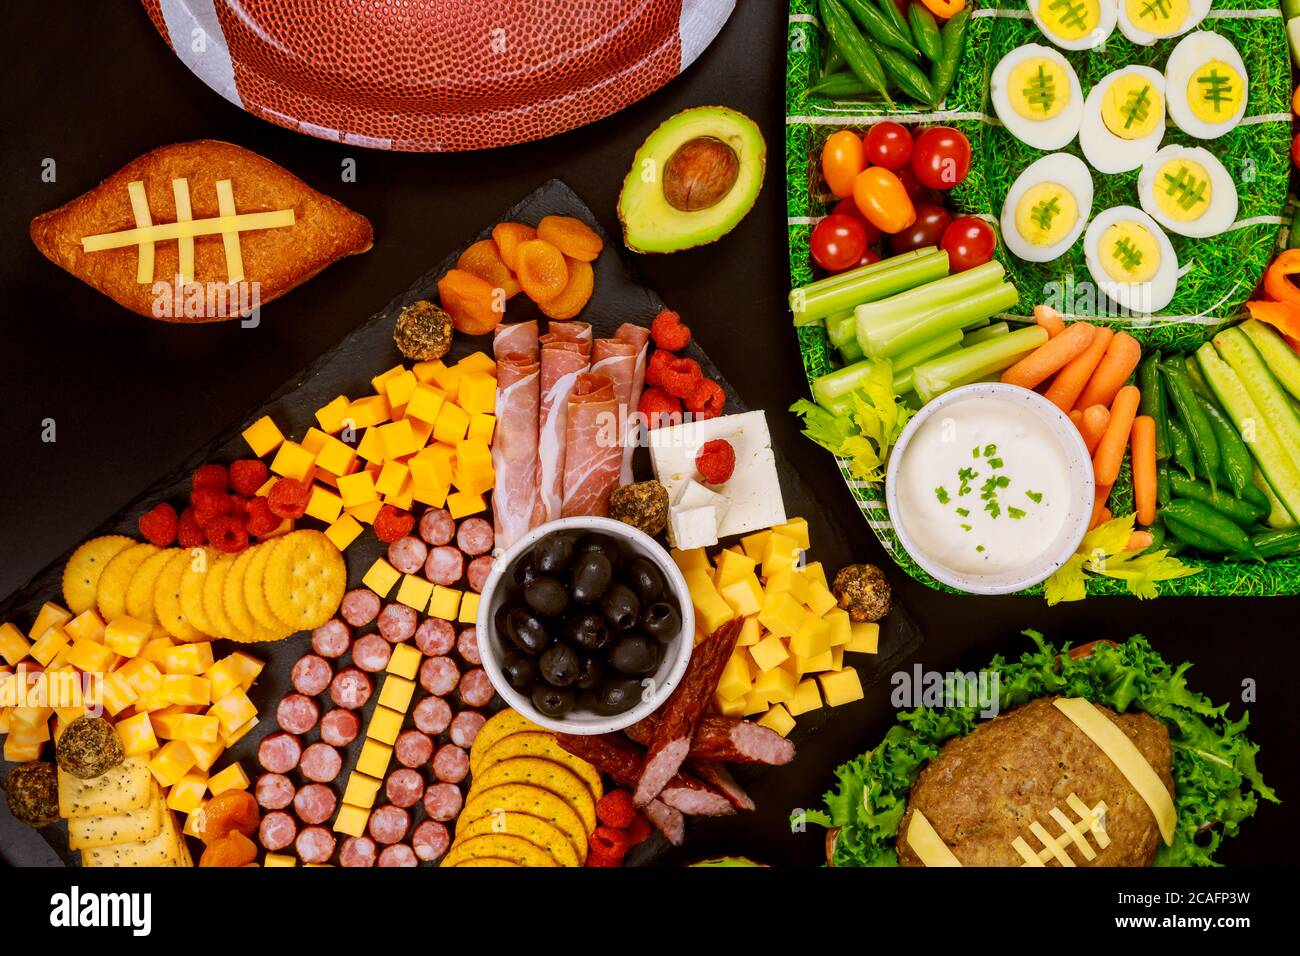 Fresh Cut Vegetable Platter With Charcuterie Appetizer For American Football Game Party Stock Photo Alamy